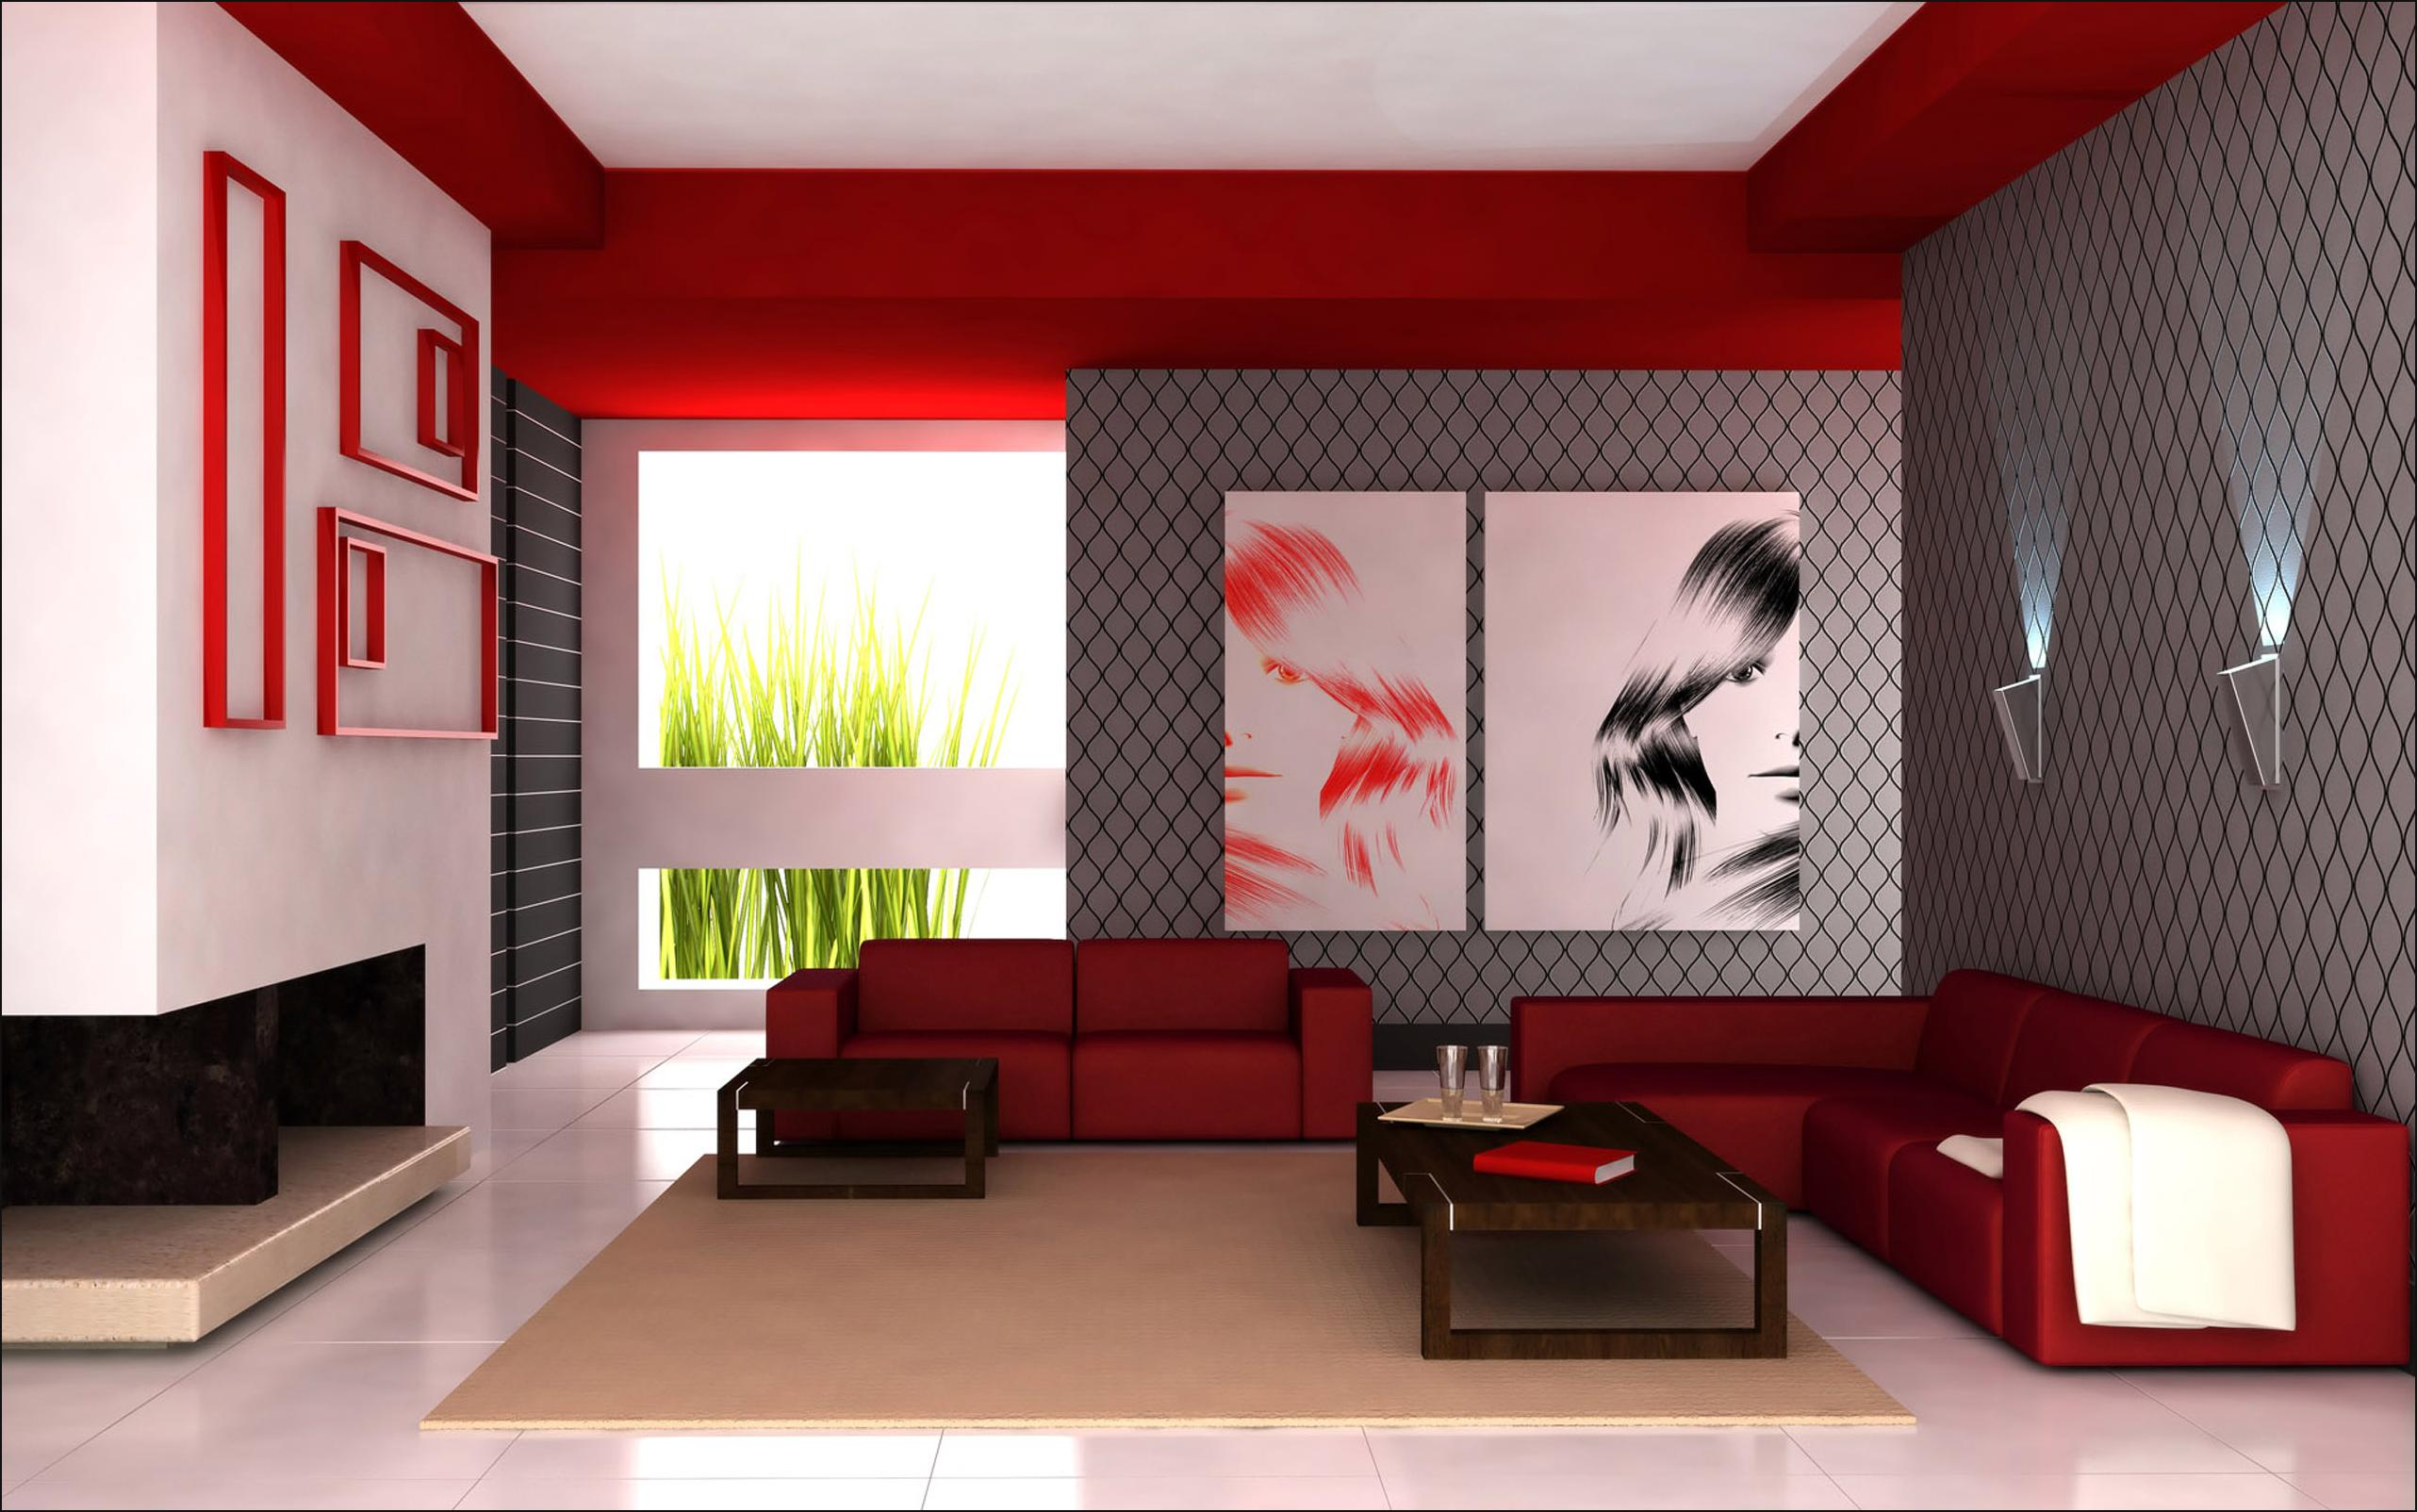 Classic Red Contemporary Design red accents The Best Ideas to Decorate with Red Accents Classic Red Contemporary Design